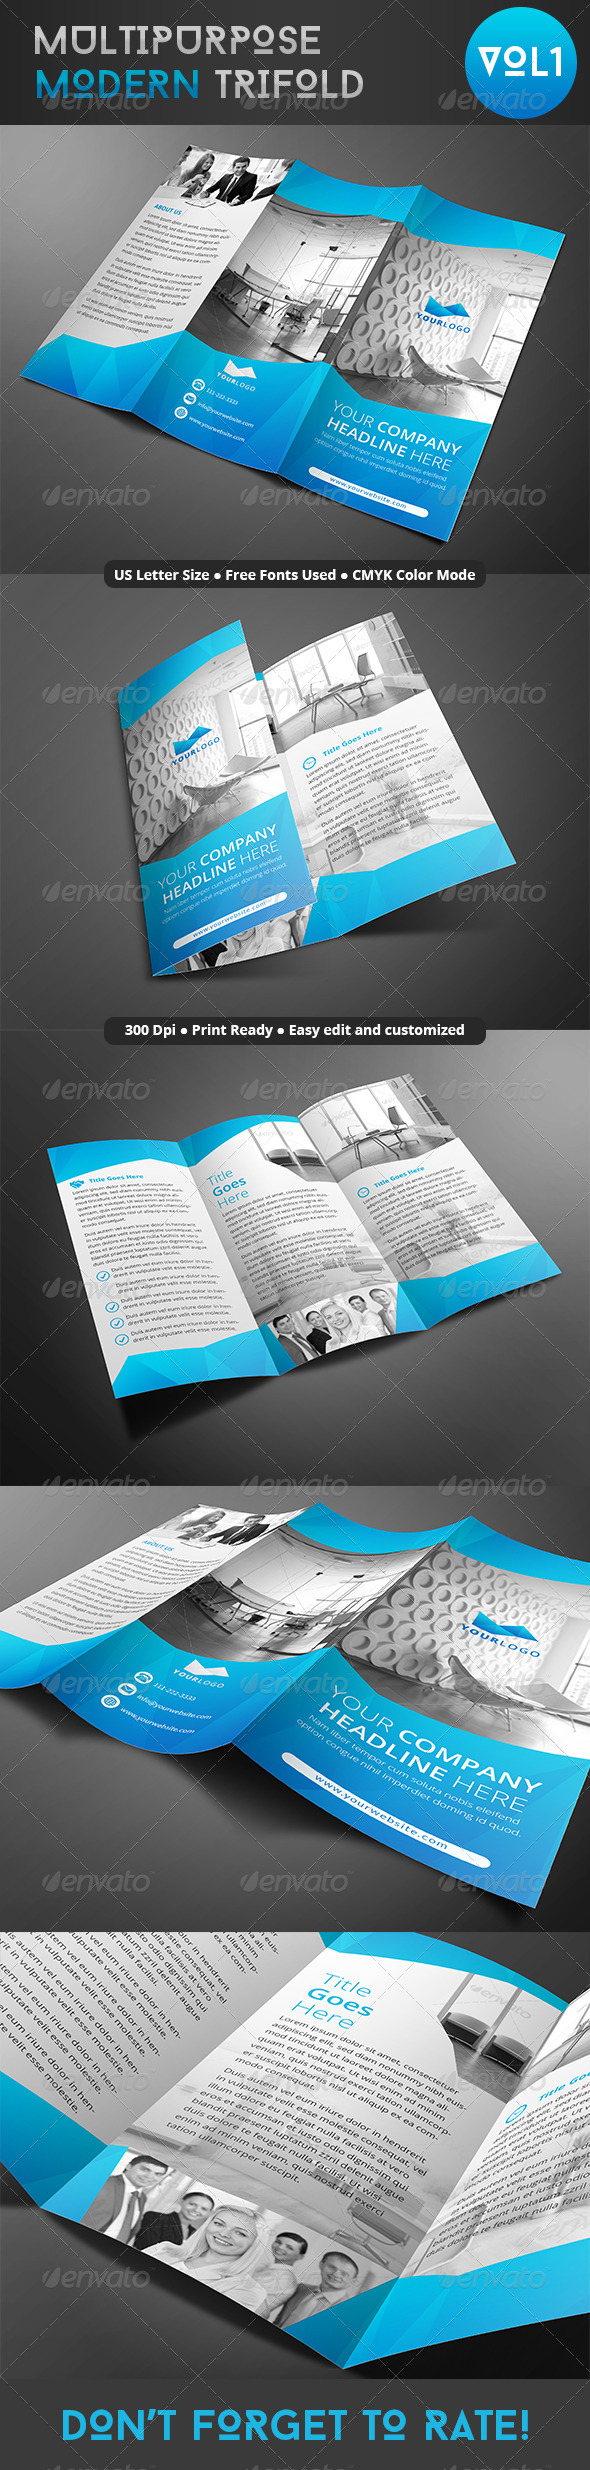 GraphicRiver Multipurpose Modern Trifold 8064198